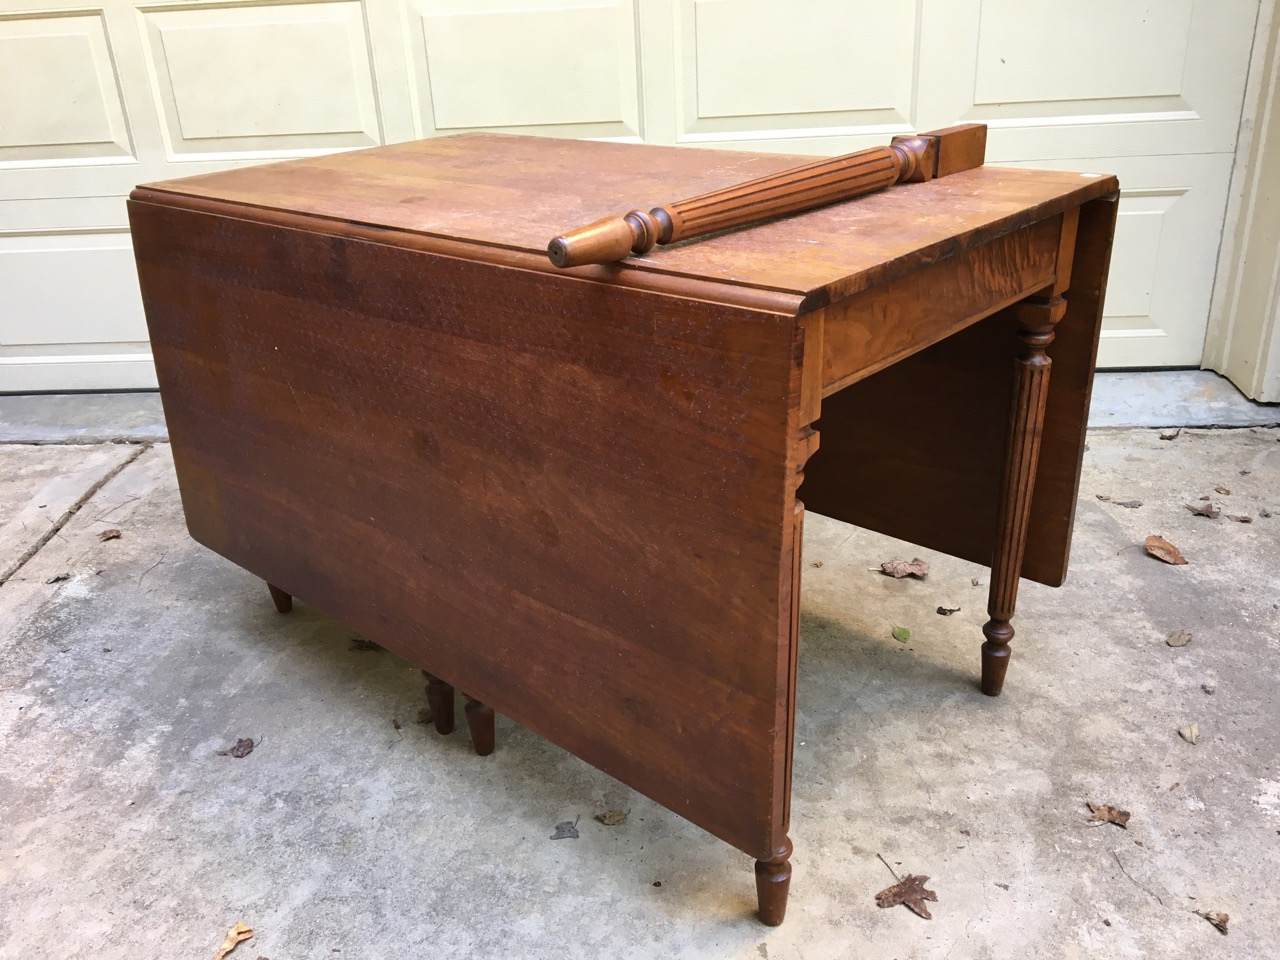 I Fell In Love With This Gate Legged Table As Soon As I Saw It At The  Thrift Store. In Itu0027s Condition I Knew It Would Require A Lot Of Work.